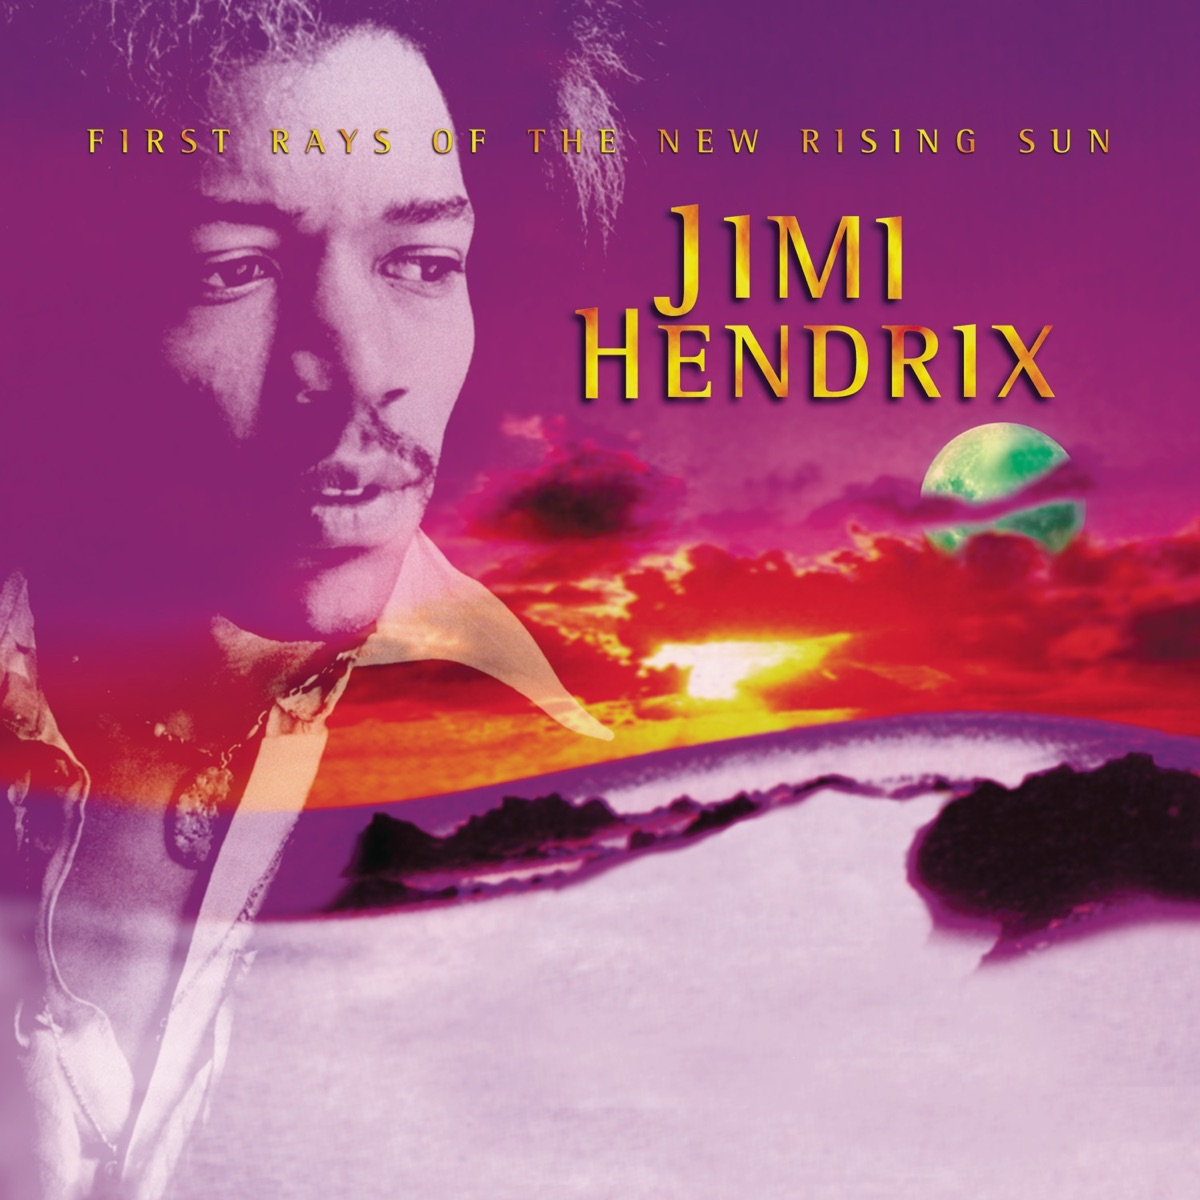 First Rays of the New Rising Sun Jimi Hendrix CD cover